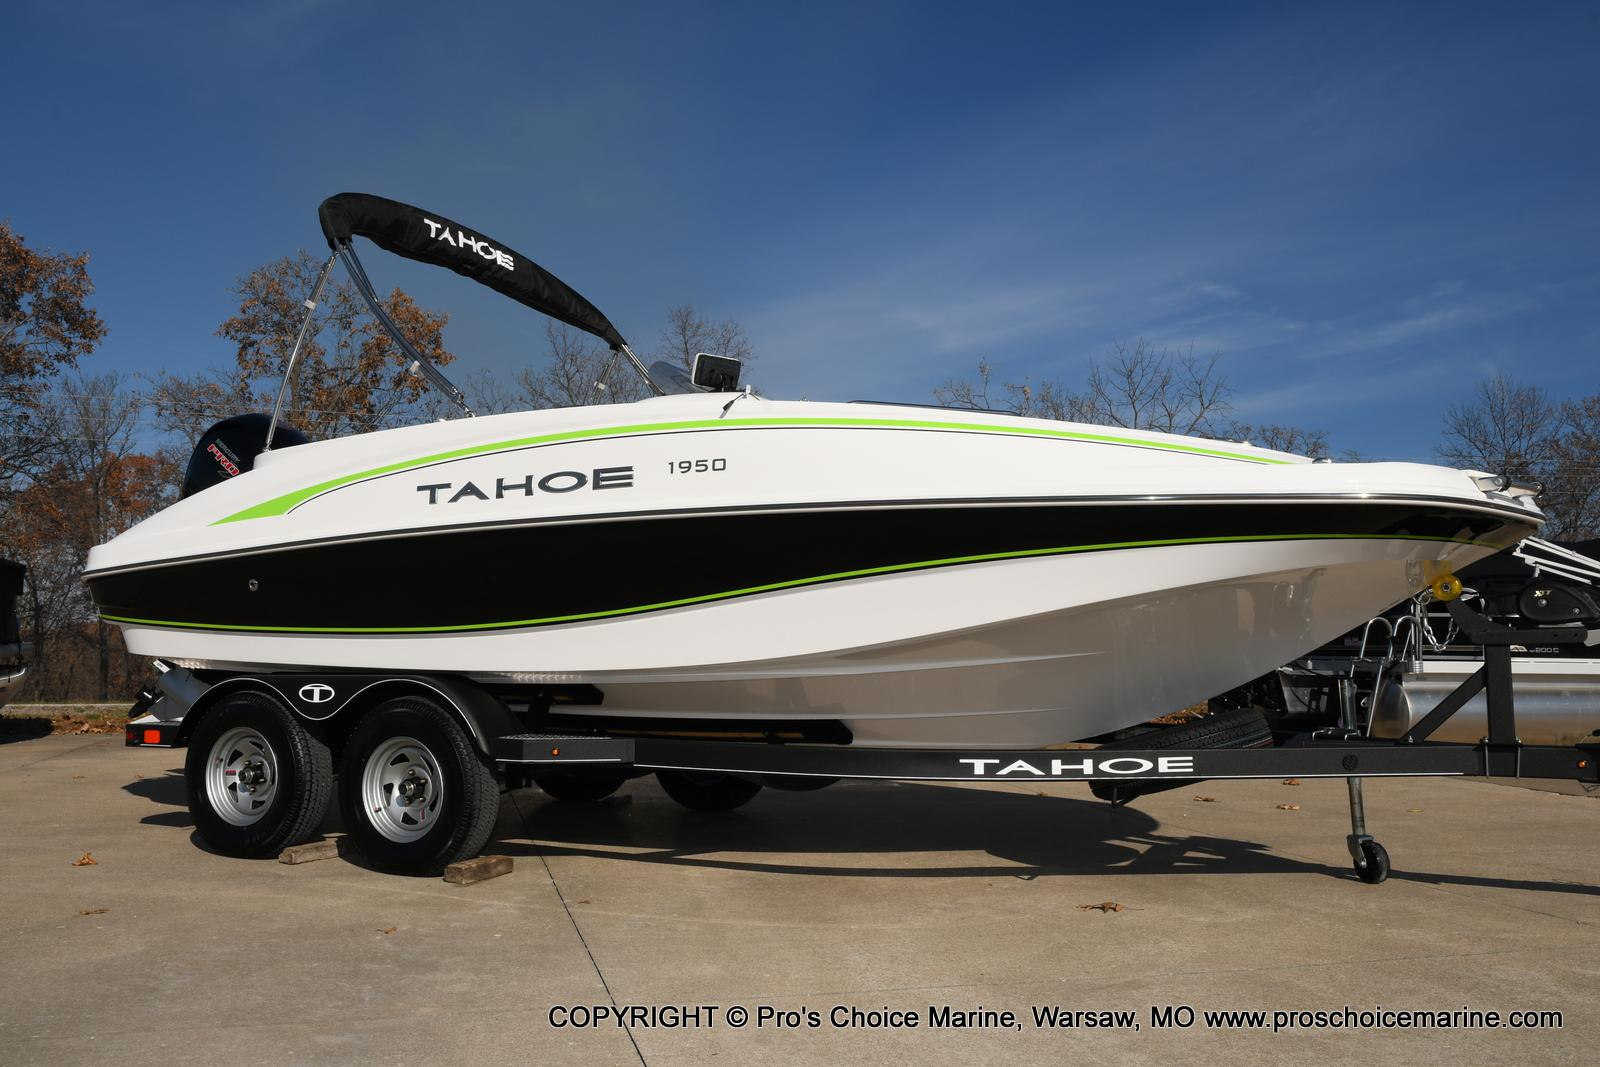 2020 Tahoe boat for sale, model of the boat is 1950 & Image # 1 of 50